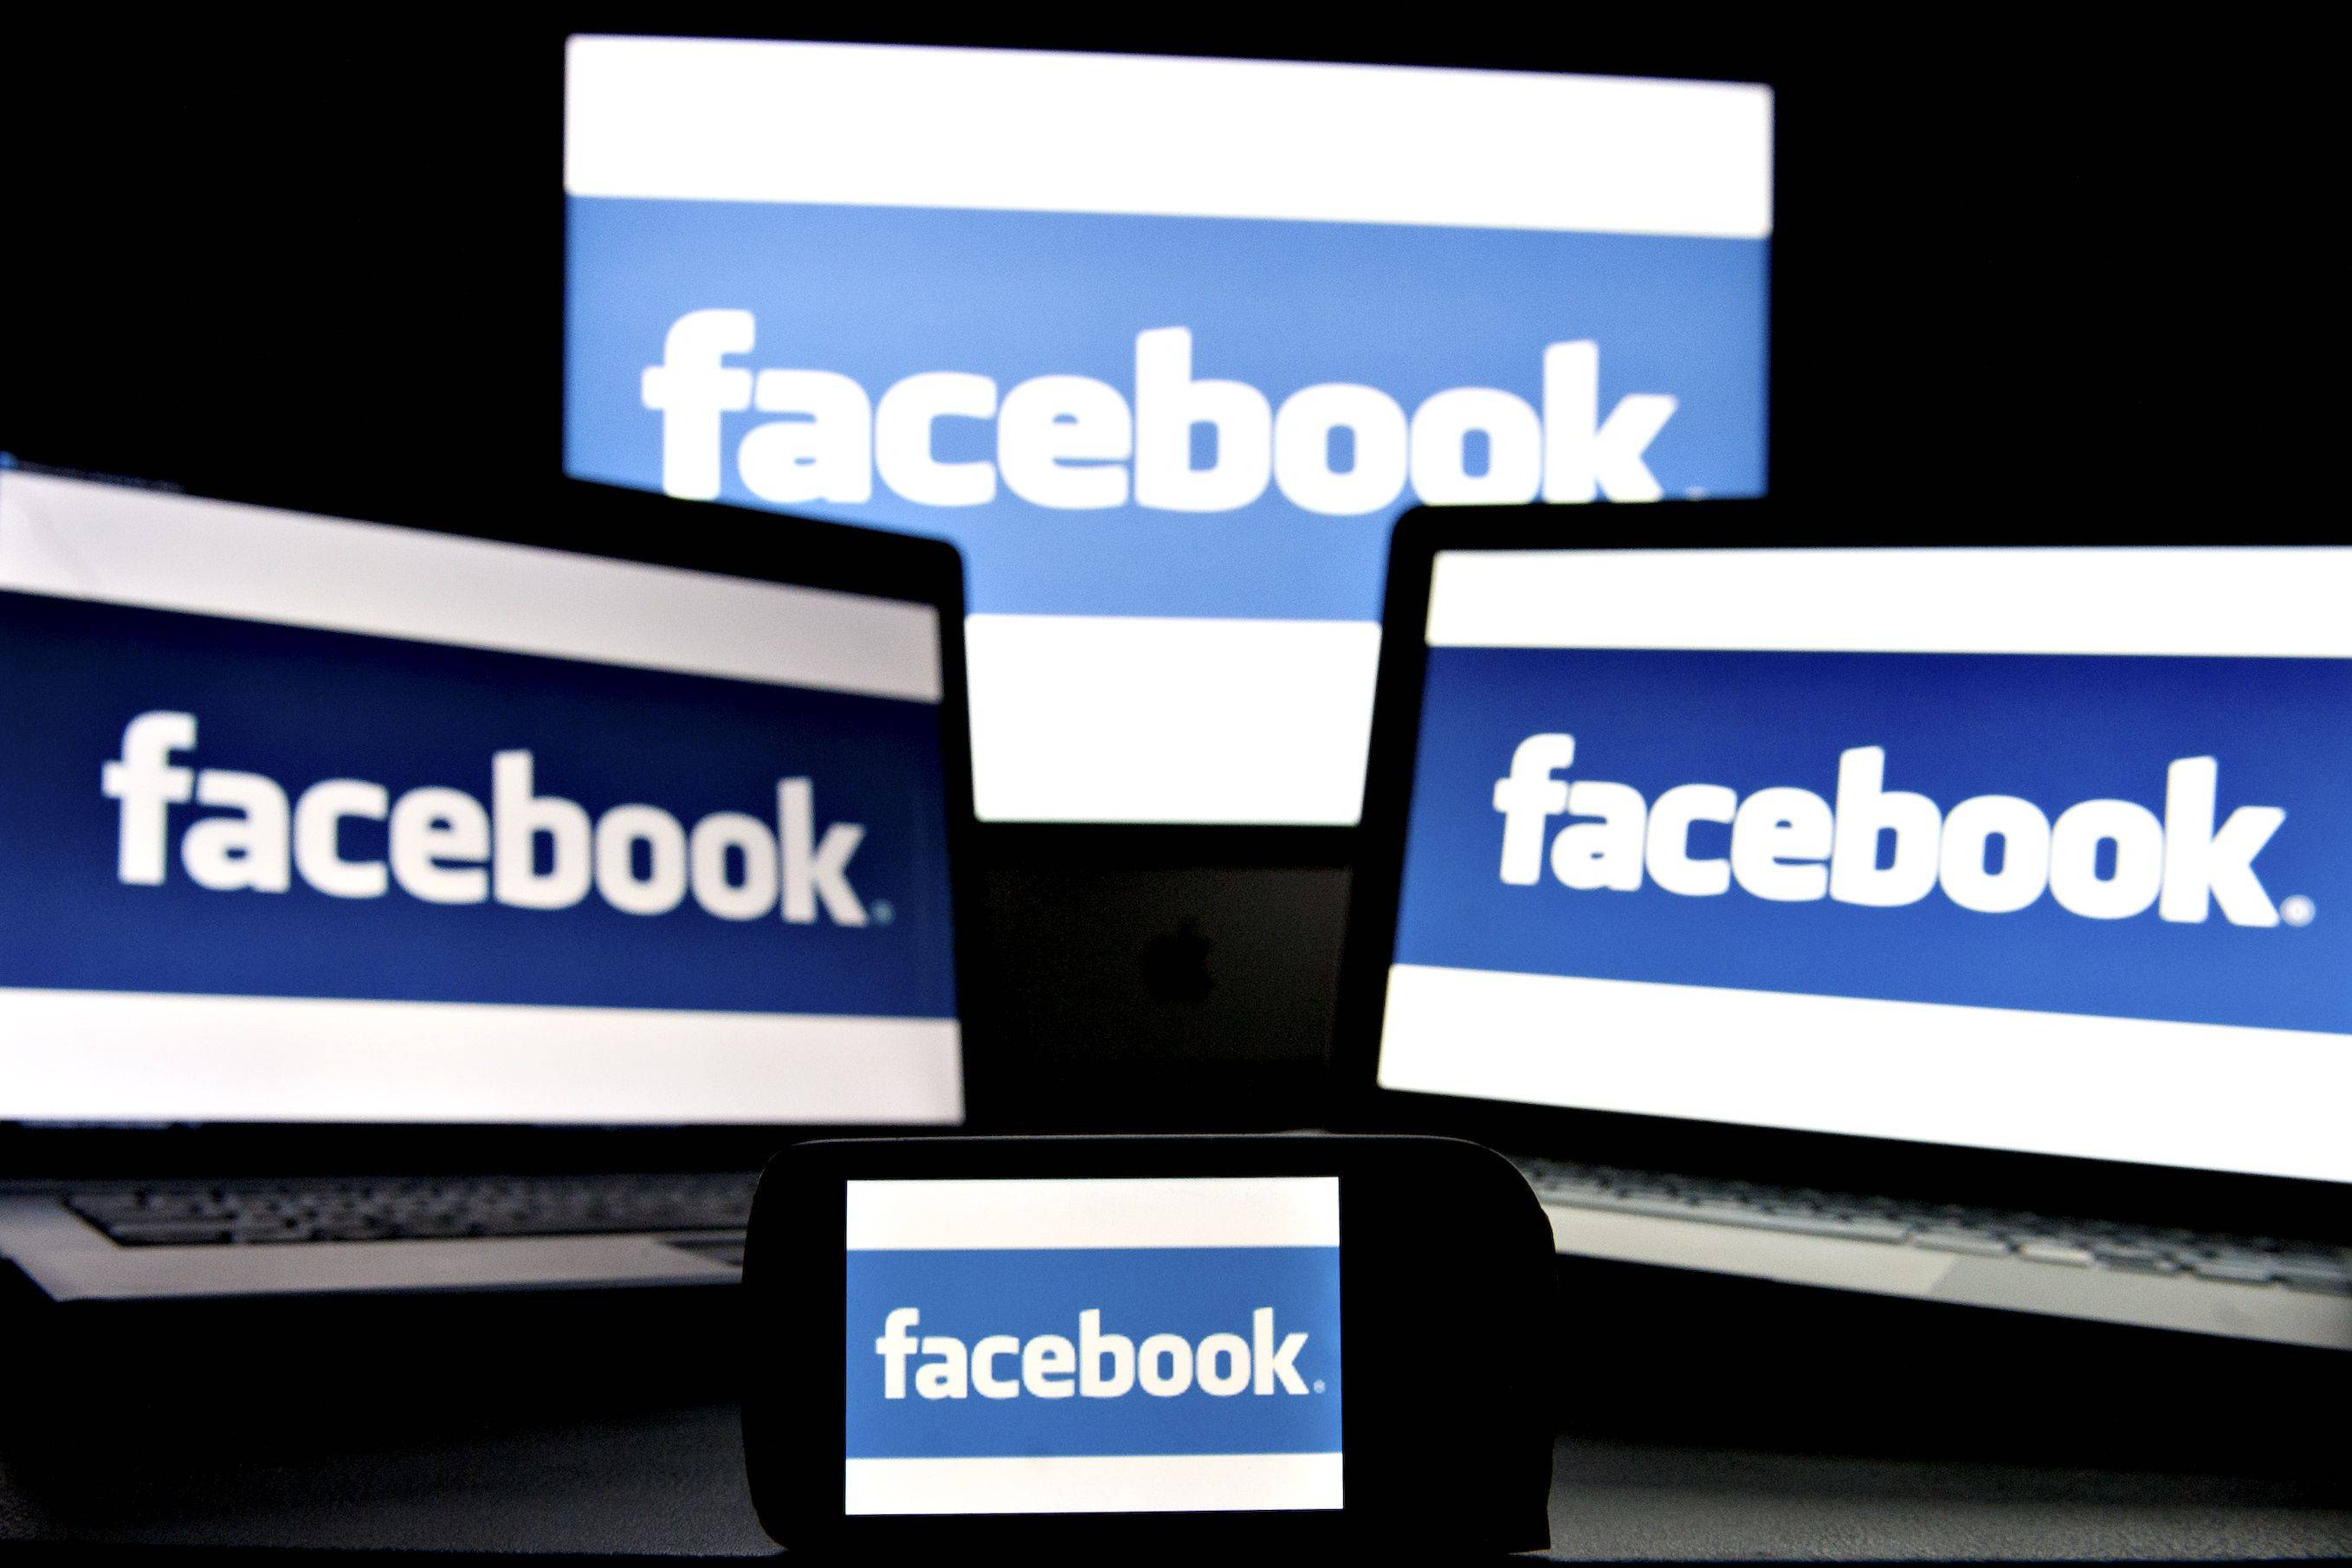 Facebook, the world's largest social network, is retooling privacy settings after user complaints that the website didn't offer enough control over personal information.